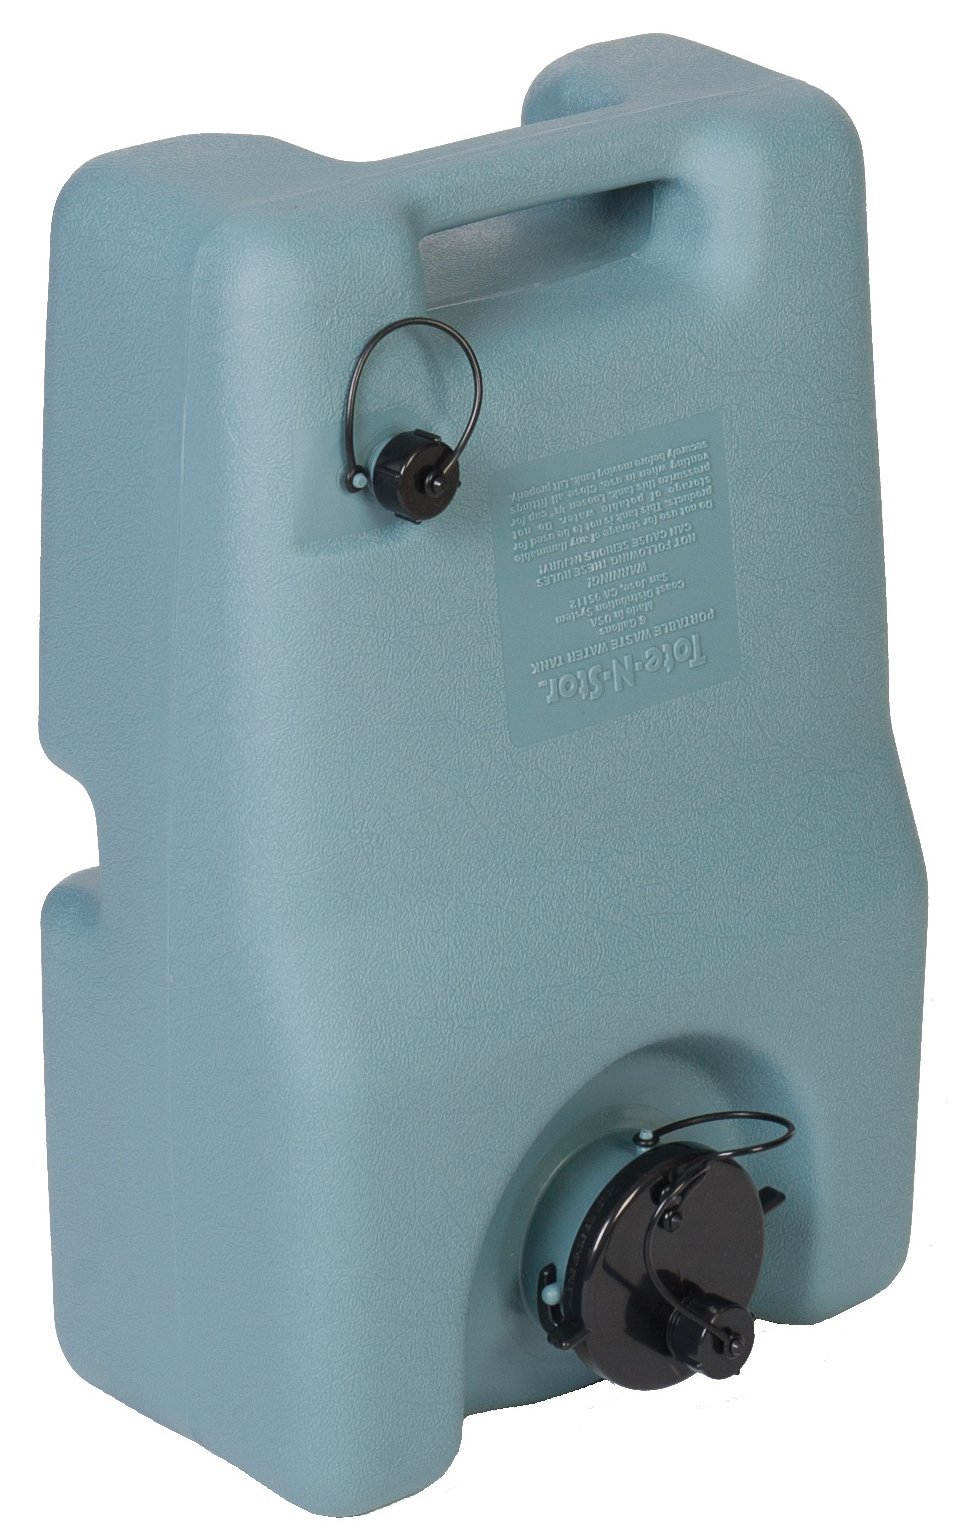 Tote-N-Stor 25951 Portable Waste Transport - 6 Gallon Capacity